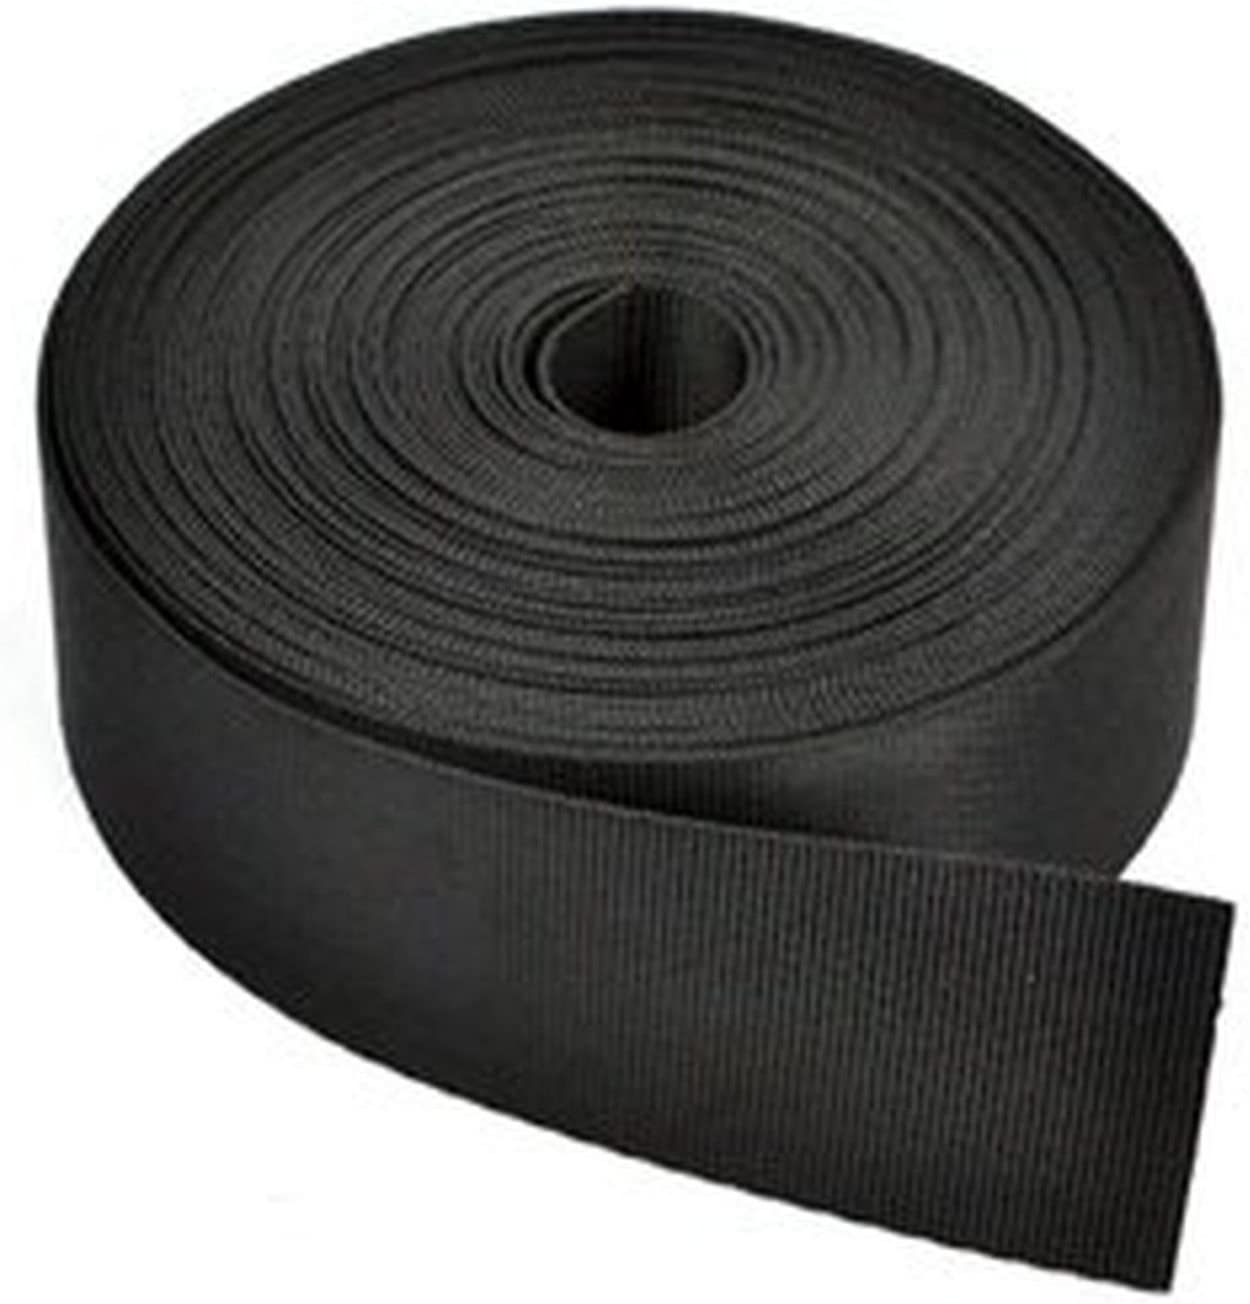 BLACK Nylon Webbing 2 inches wide 10 yards Top Quality